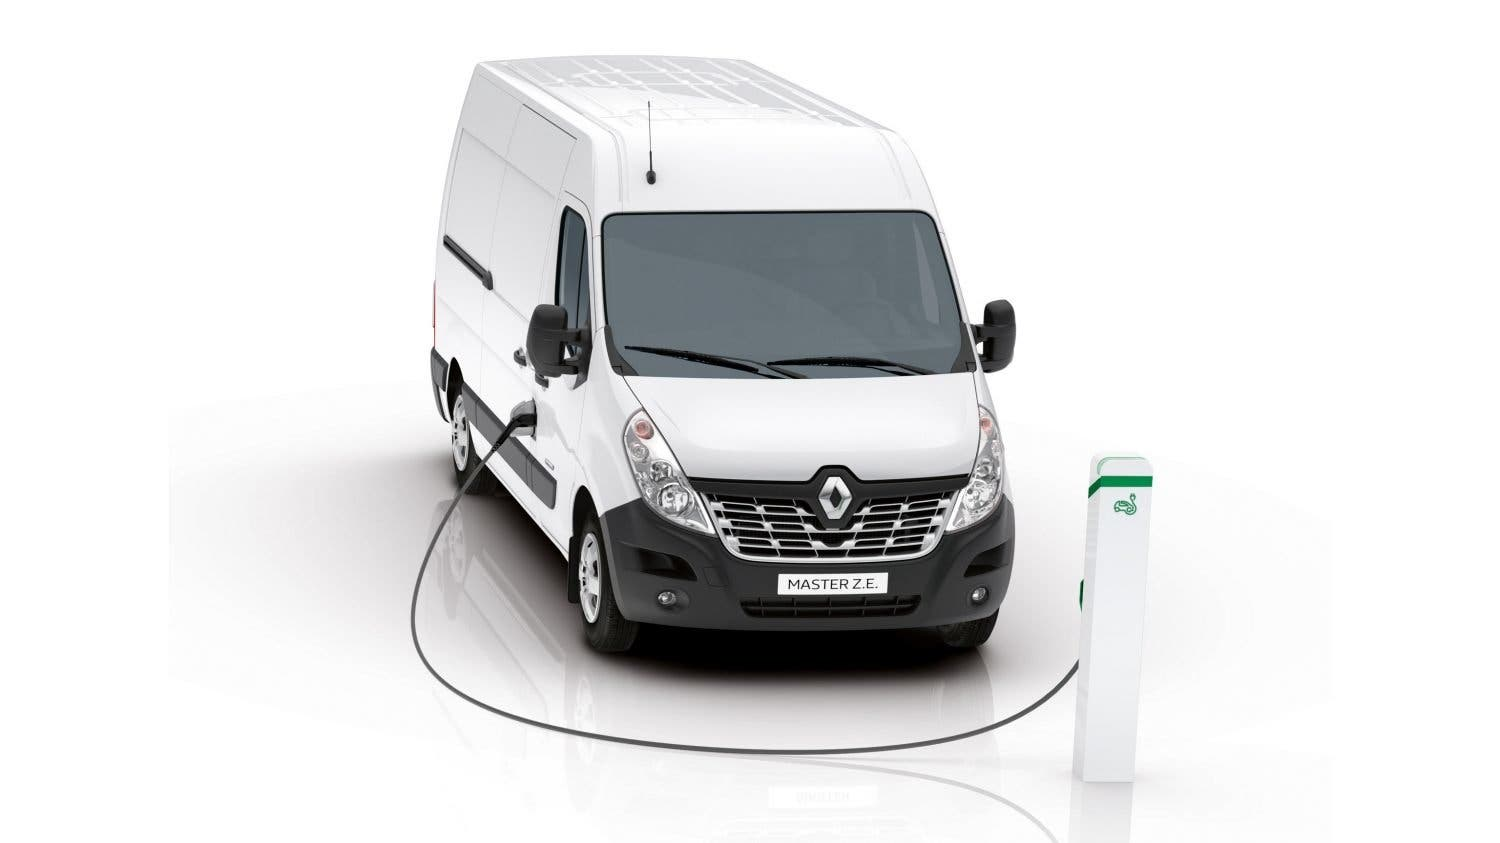 renault-master-ze-f62-ph1-reveal-001.jpg.ximg.l_full_m.smart